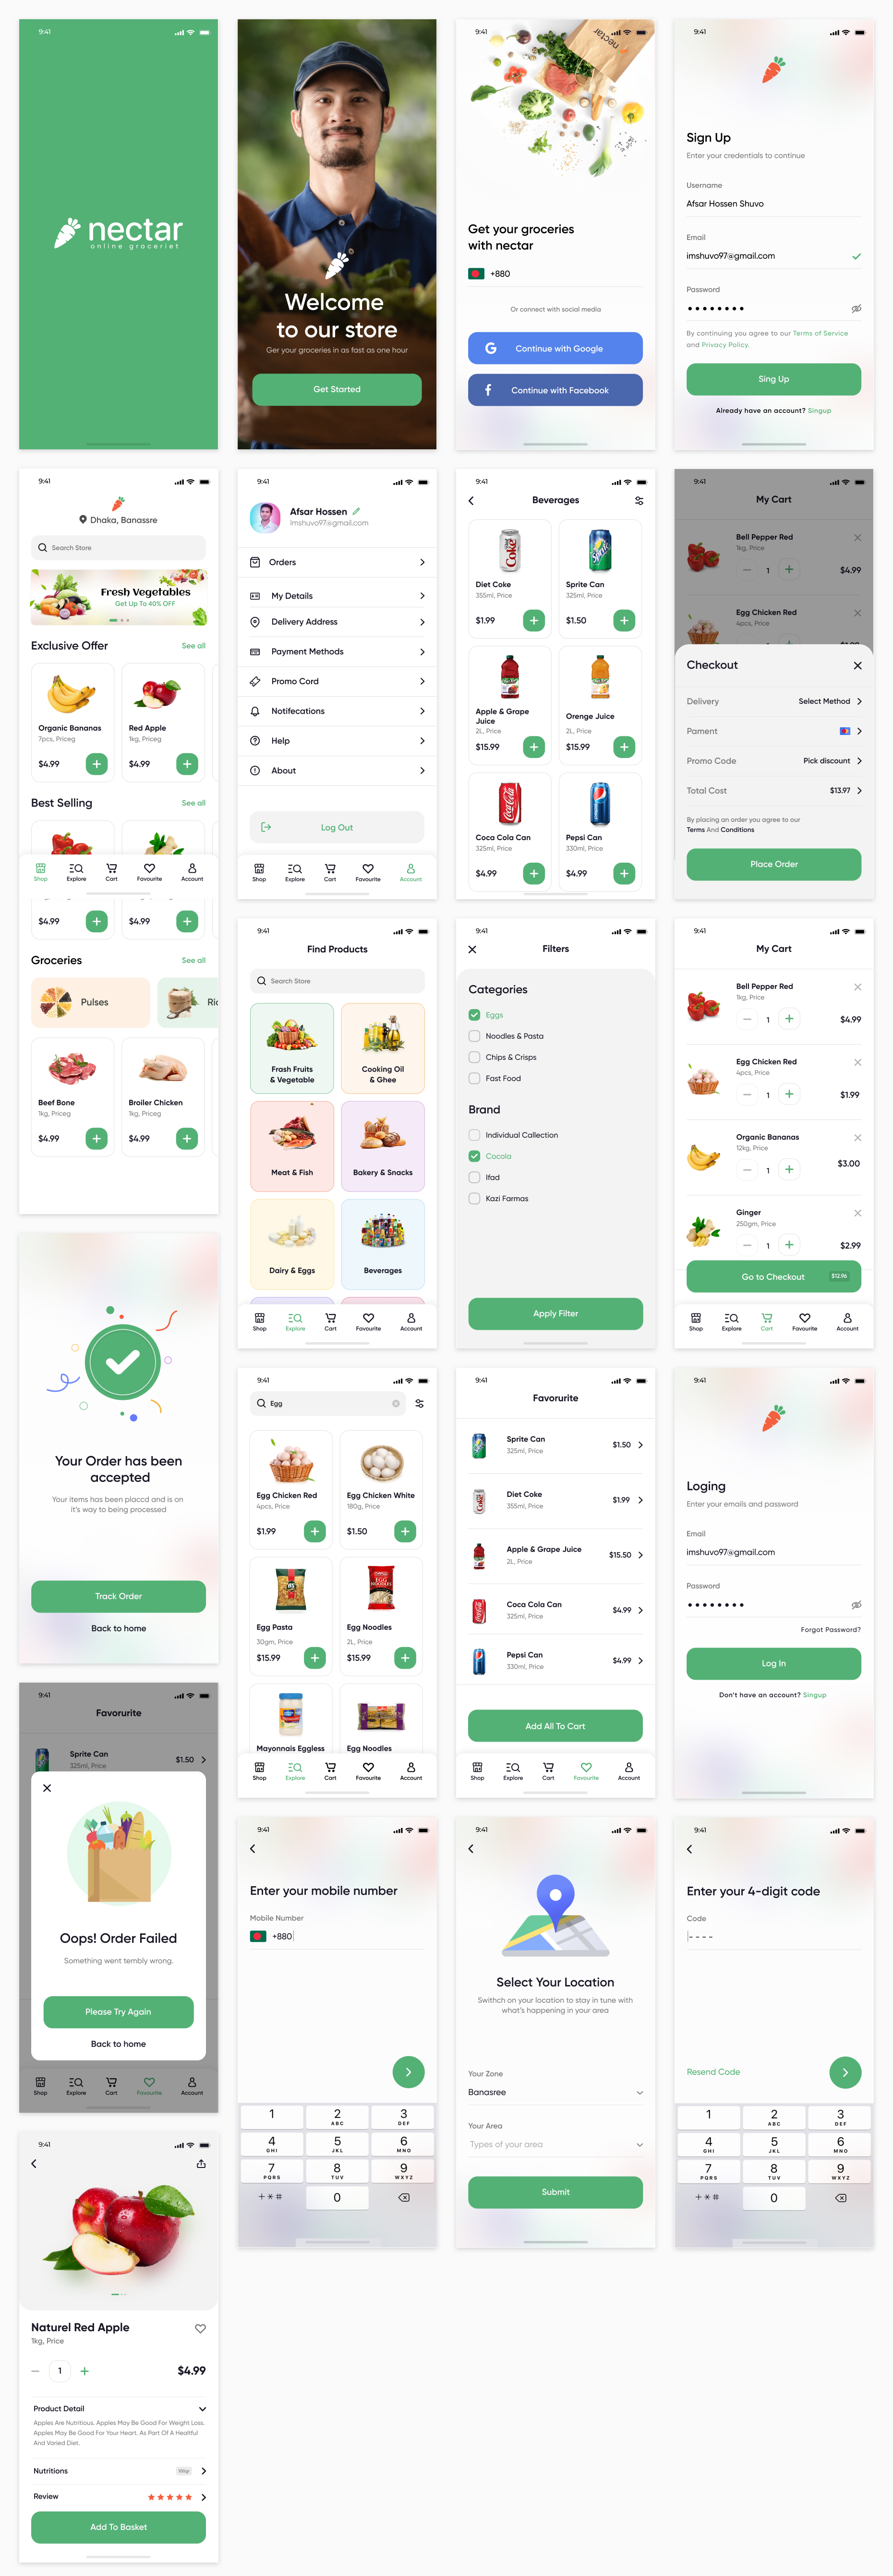 Online Groceries Free App UI Kit - Minimal and clean groceries app design, 20 screens for you to get started.